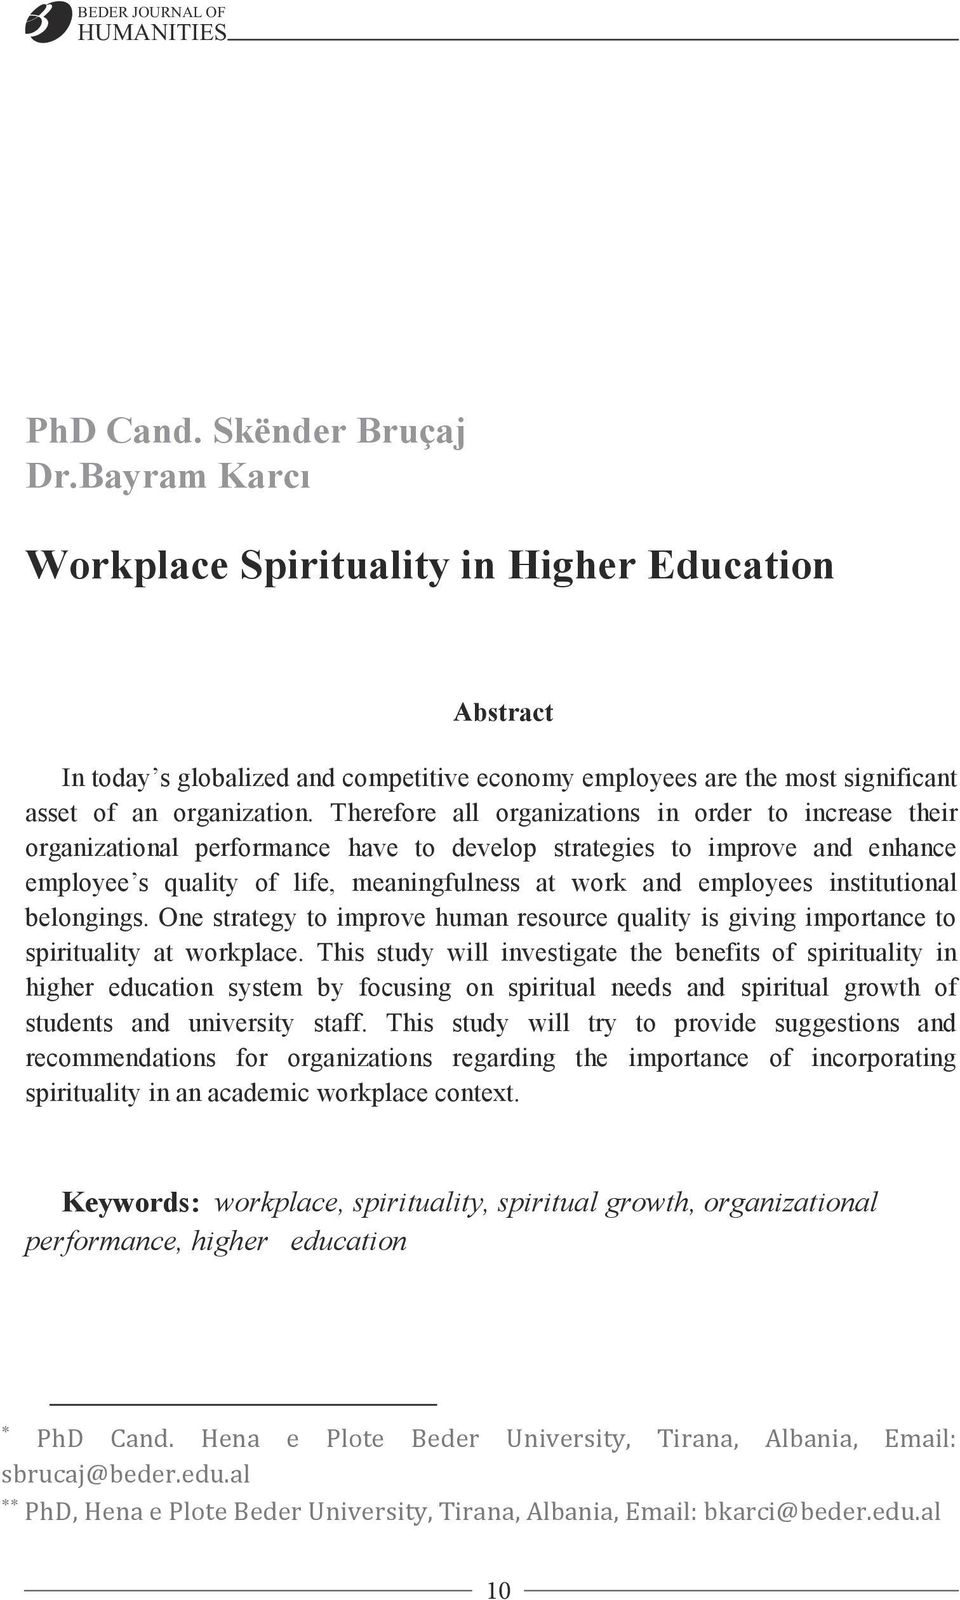 institutional belongings. One strategy to improve human resource quality is giving importance to spirituality at workplace.